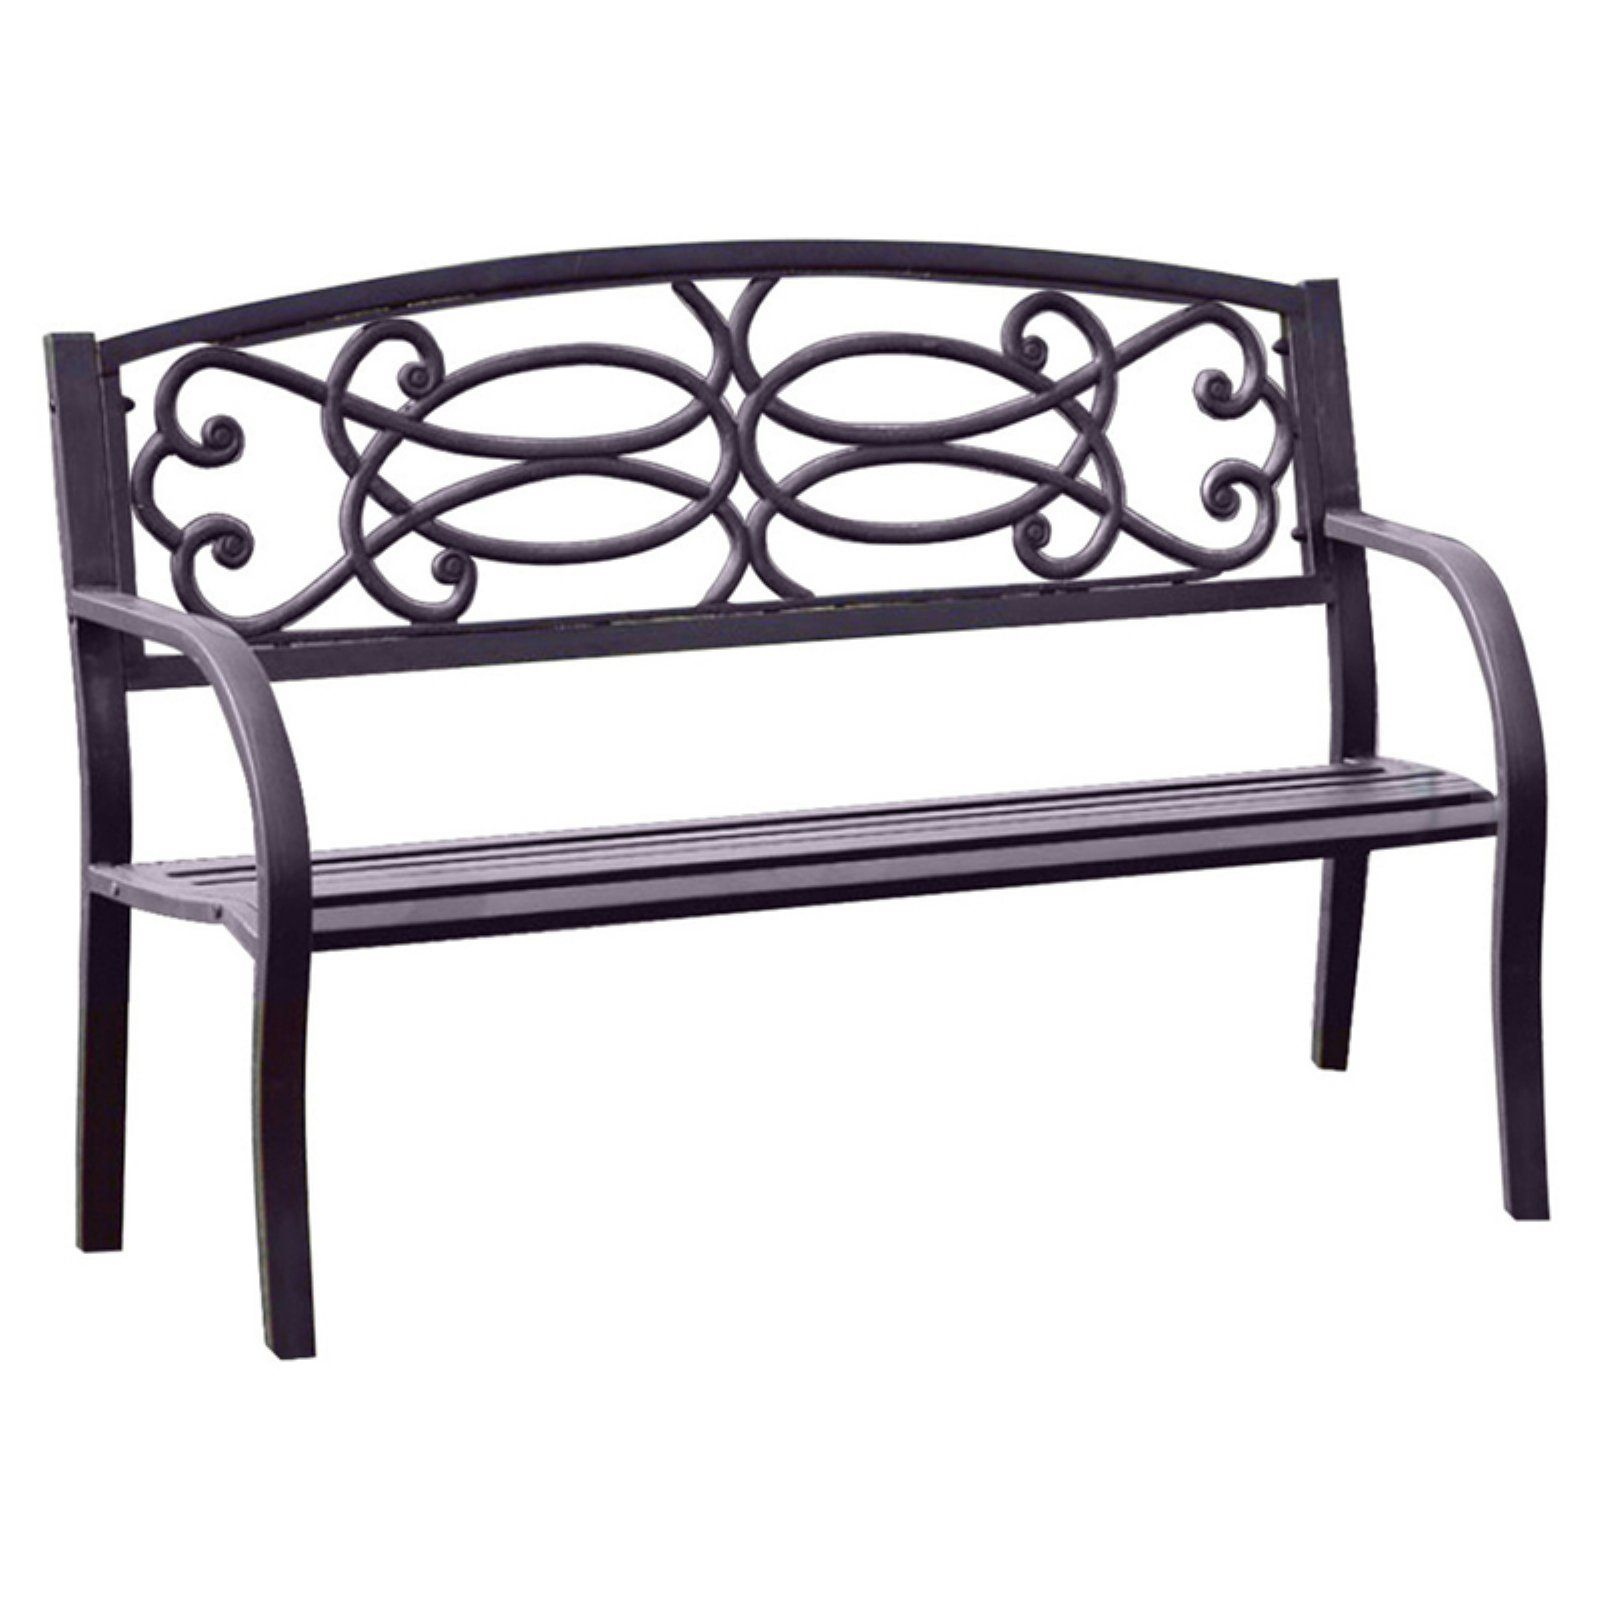 Outdoor Benzara Potter 4 2 Ft Curved Back Garden Bench Black In